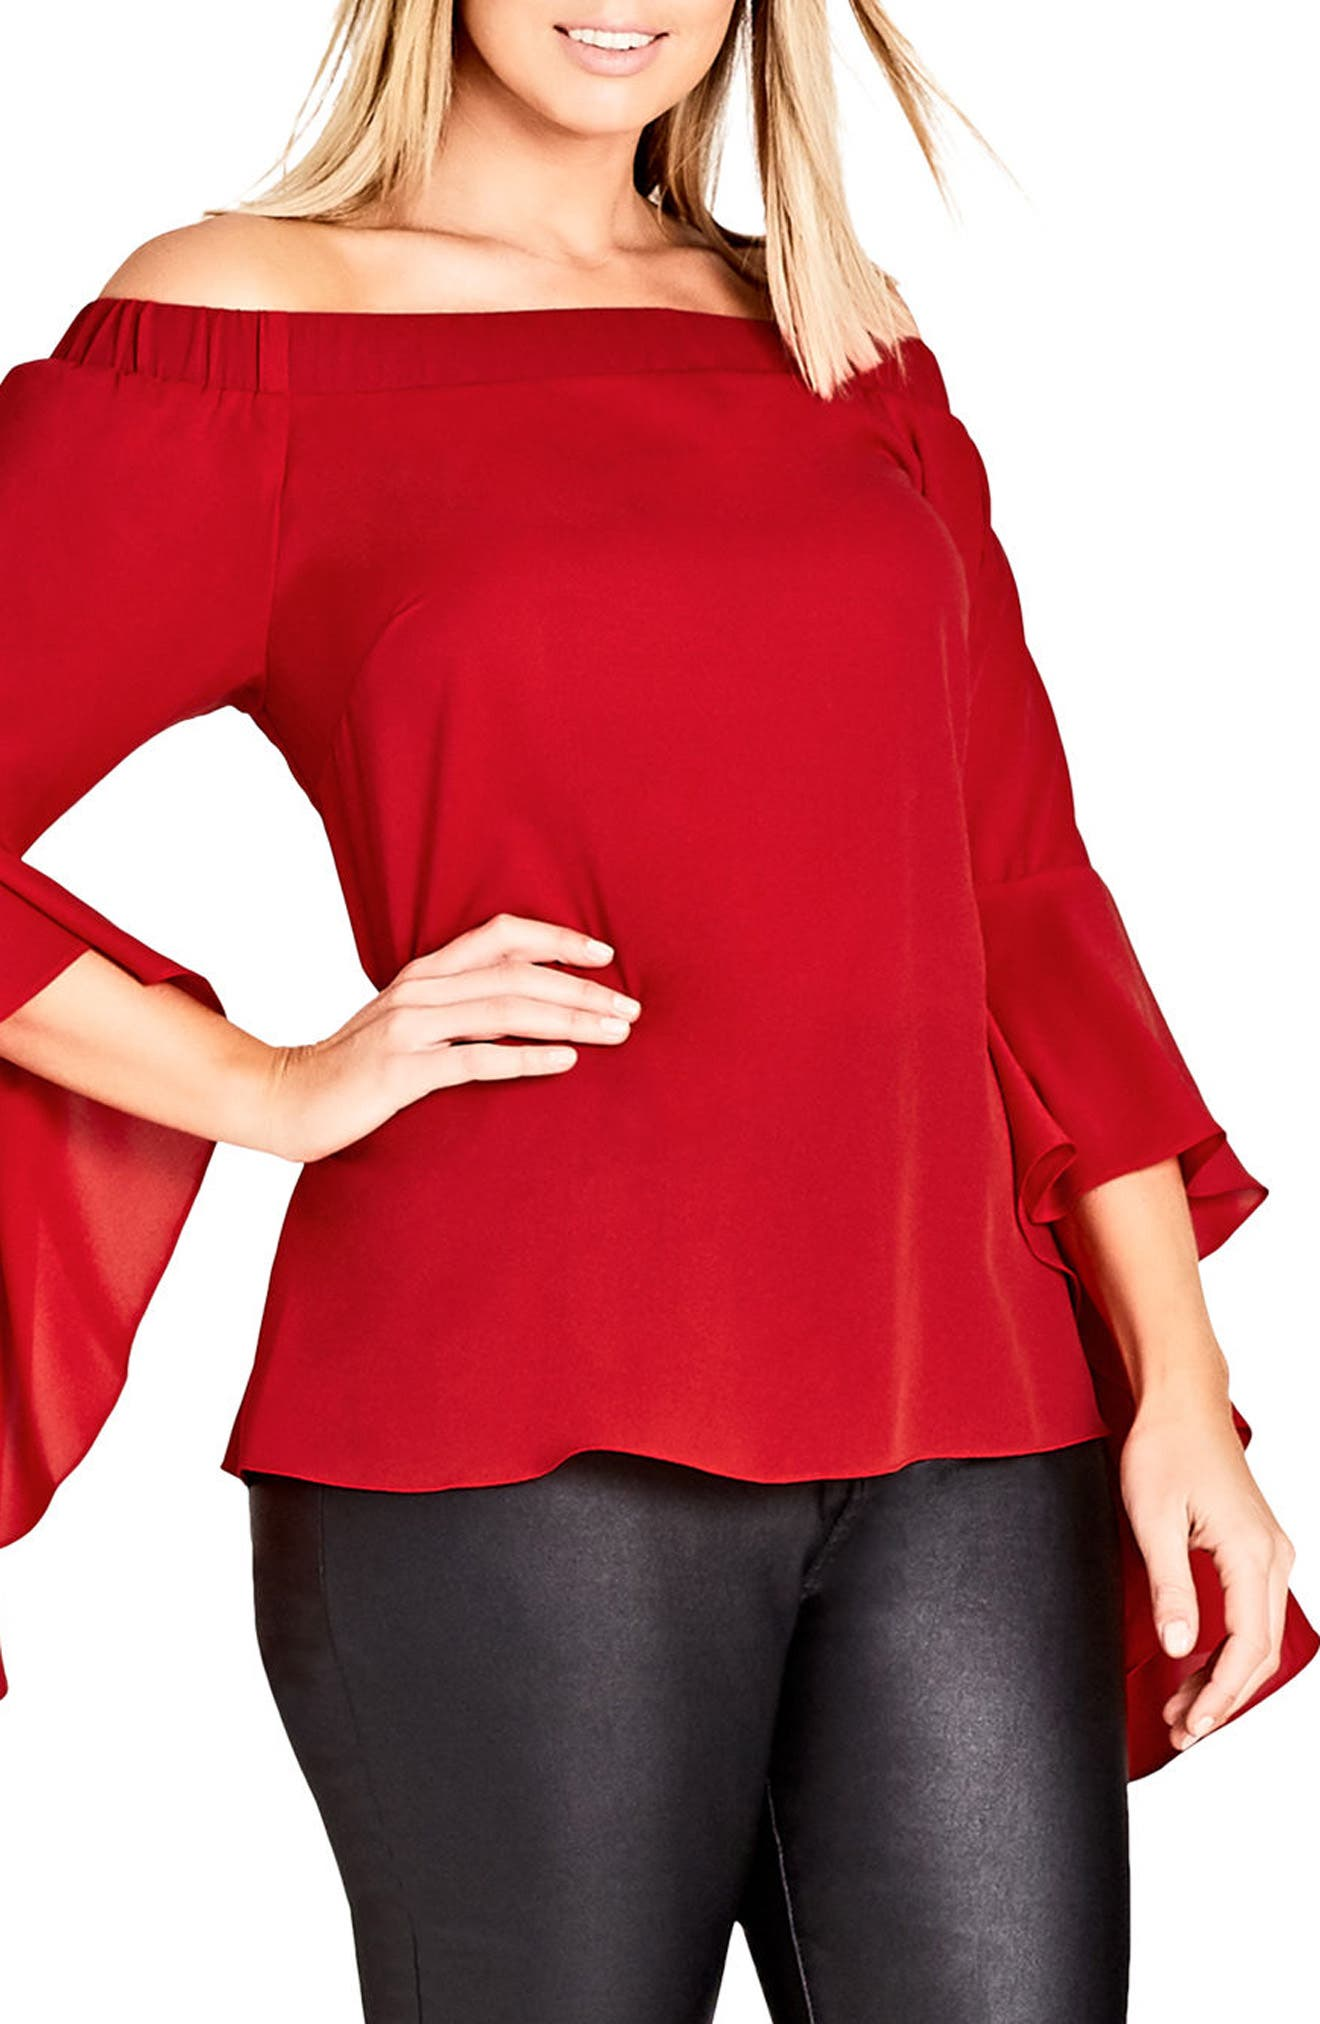 Main Image - City Chic Romantic Off the Shoulder Bell Sleeve Top (Plus Size)